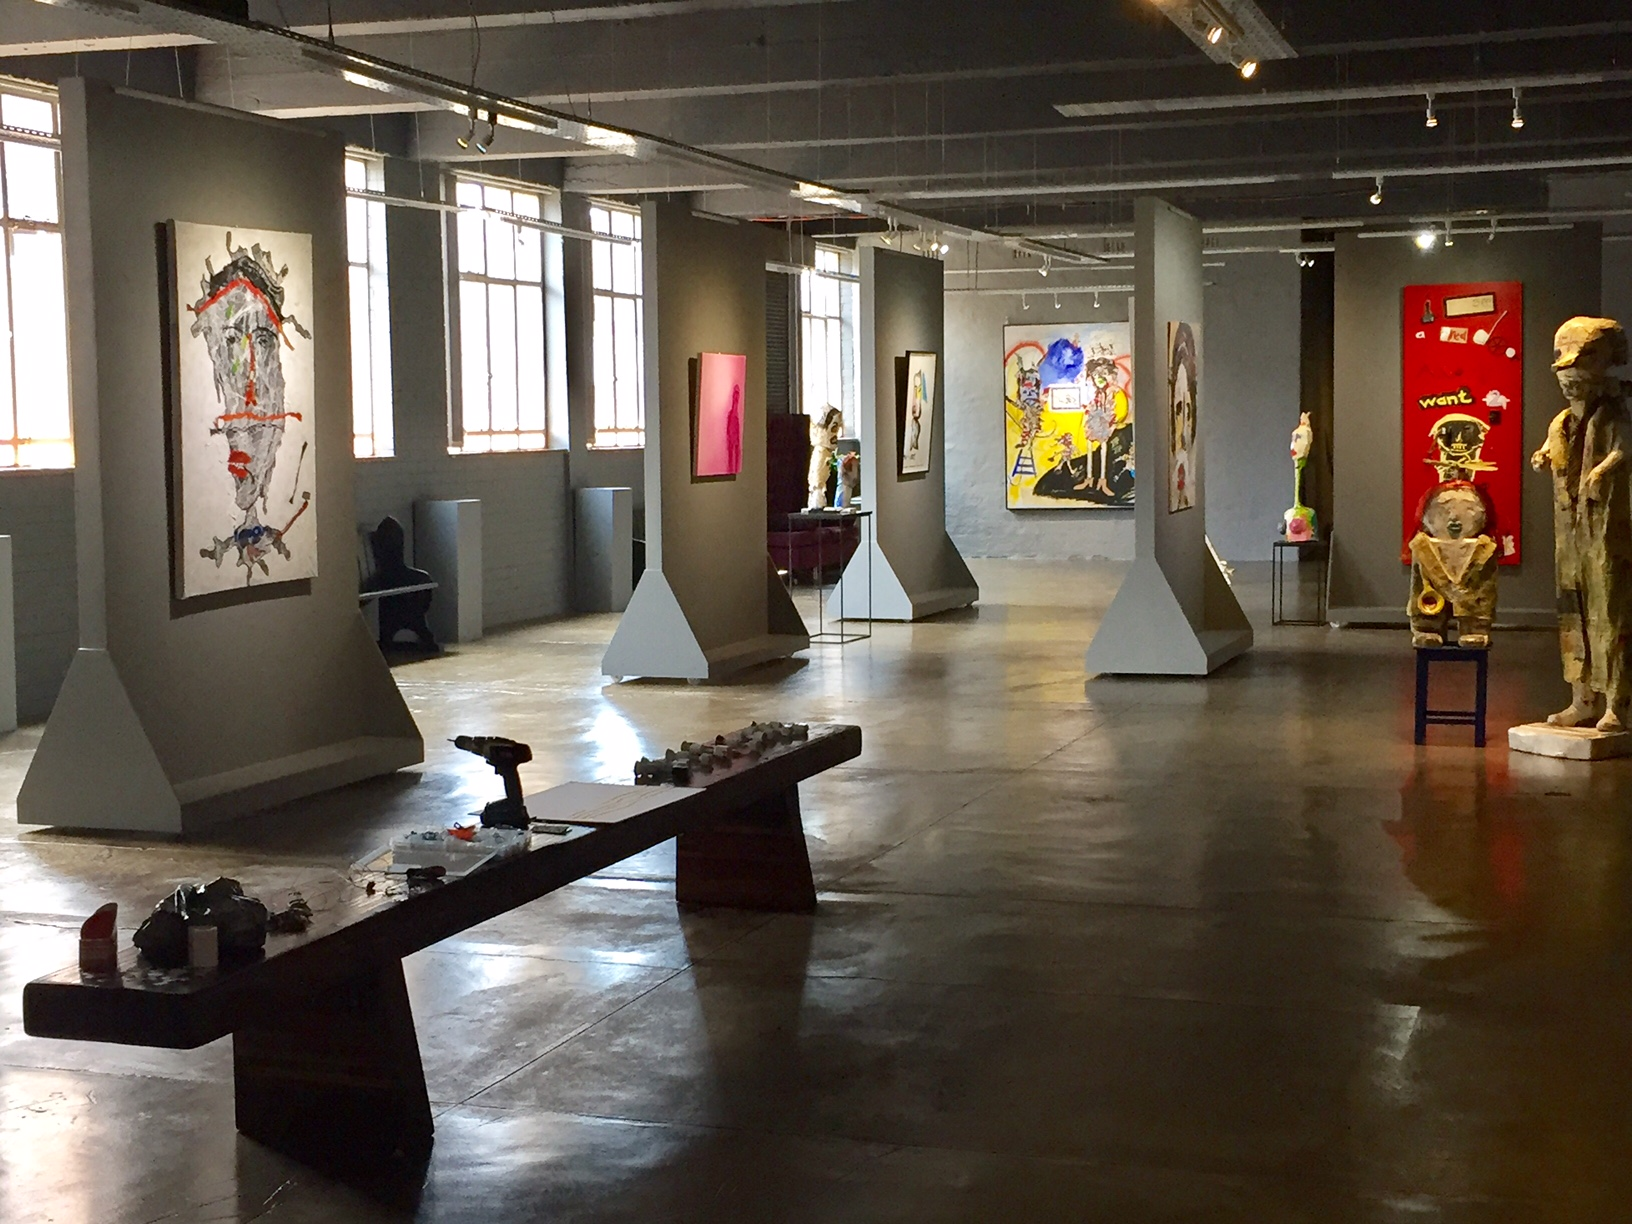 The LaunchPad - gallery space